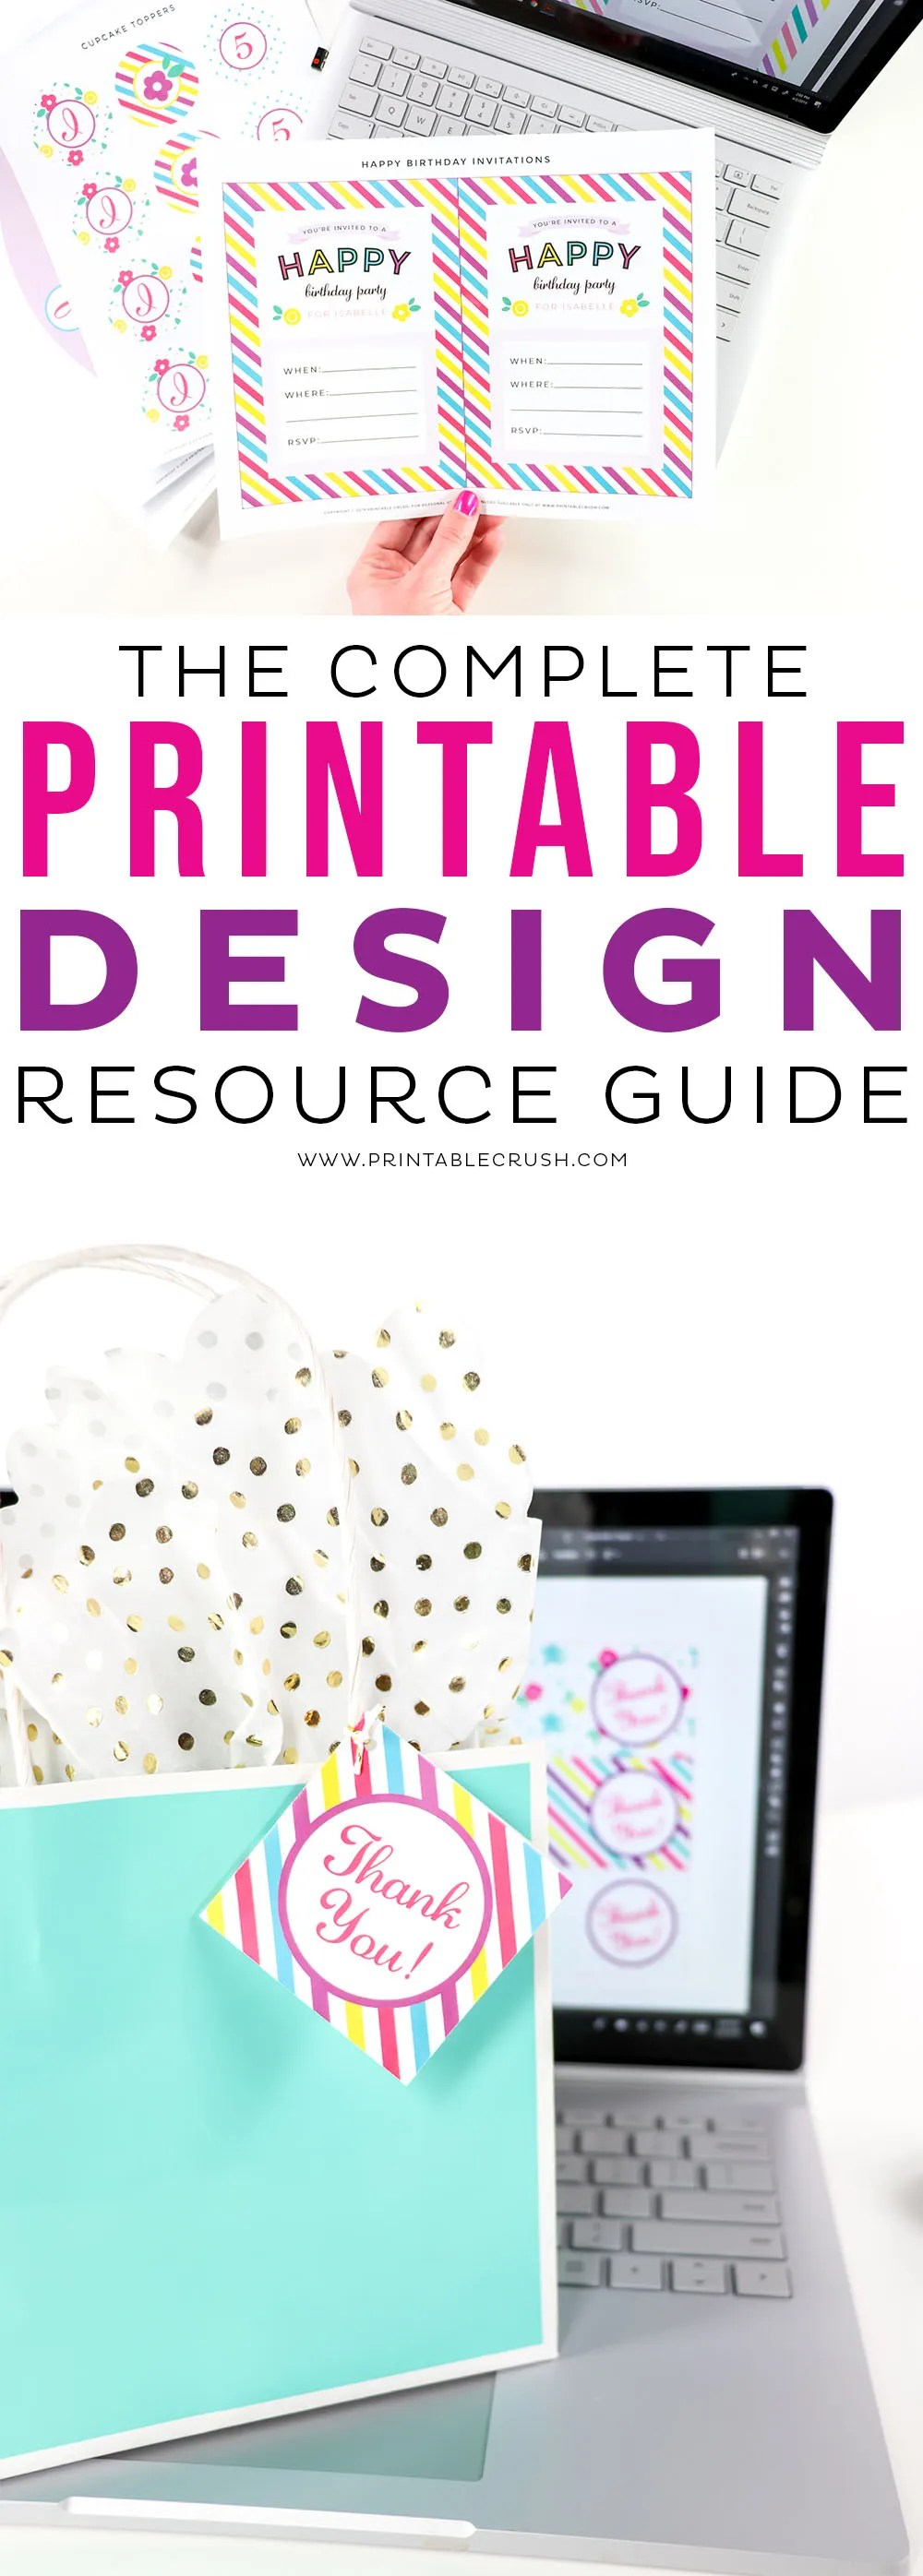 Intimidated by creating printables for your online business? Check out the Complete Printable Design Resource Guide for tips in starting your digital store! #printabledesignforbeginners #printabledesign #printables #entrepreneur #digitalproducts via @printablecrush